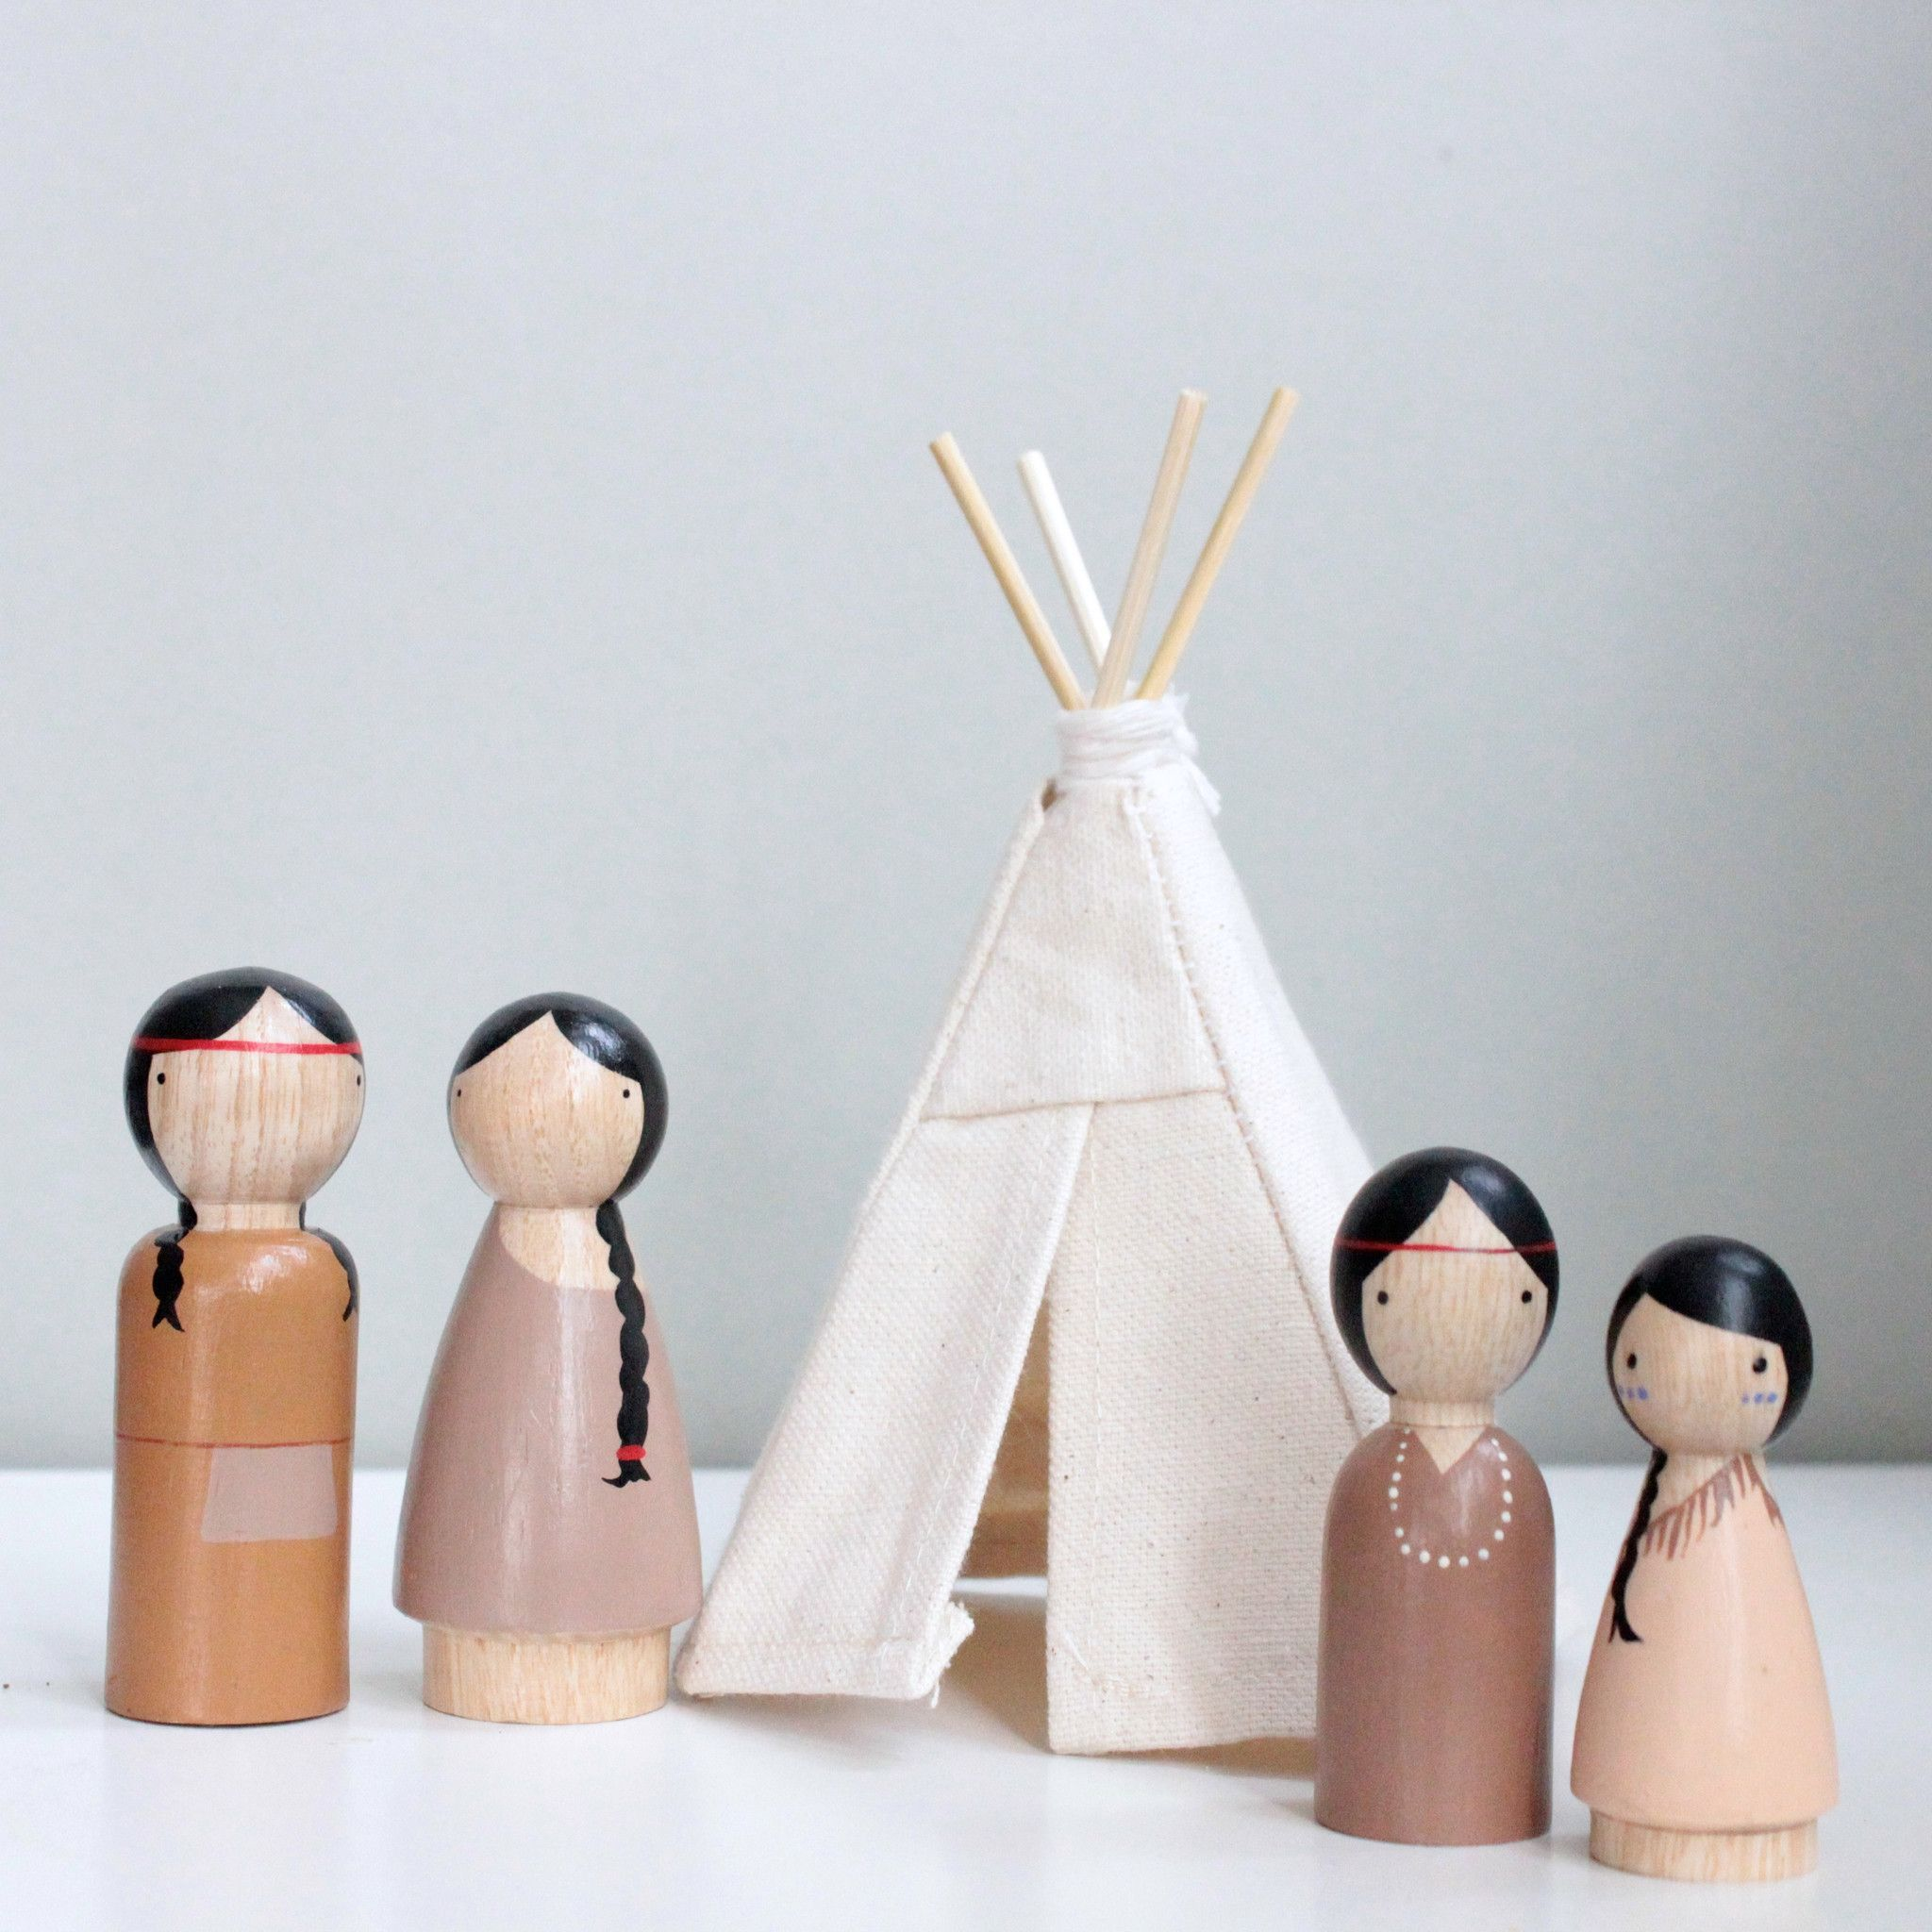 Dollhouse Teepee, tipi for doll house with peg dolls #americandolls